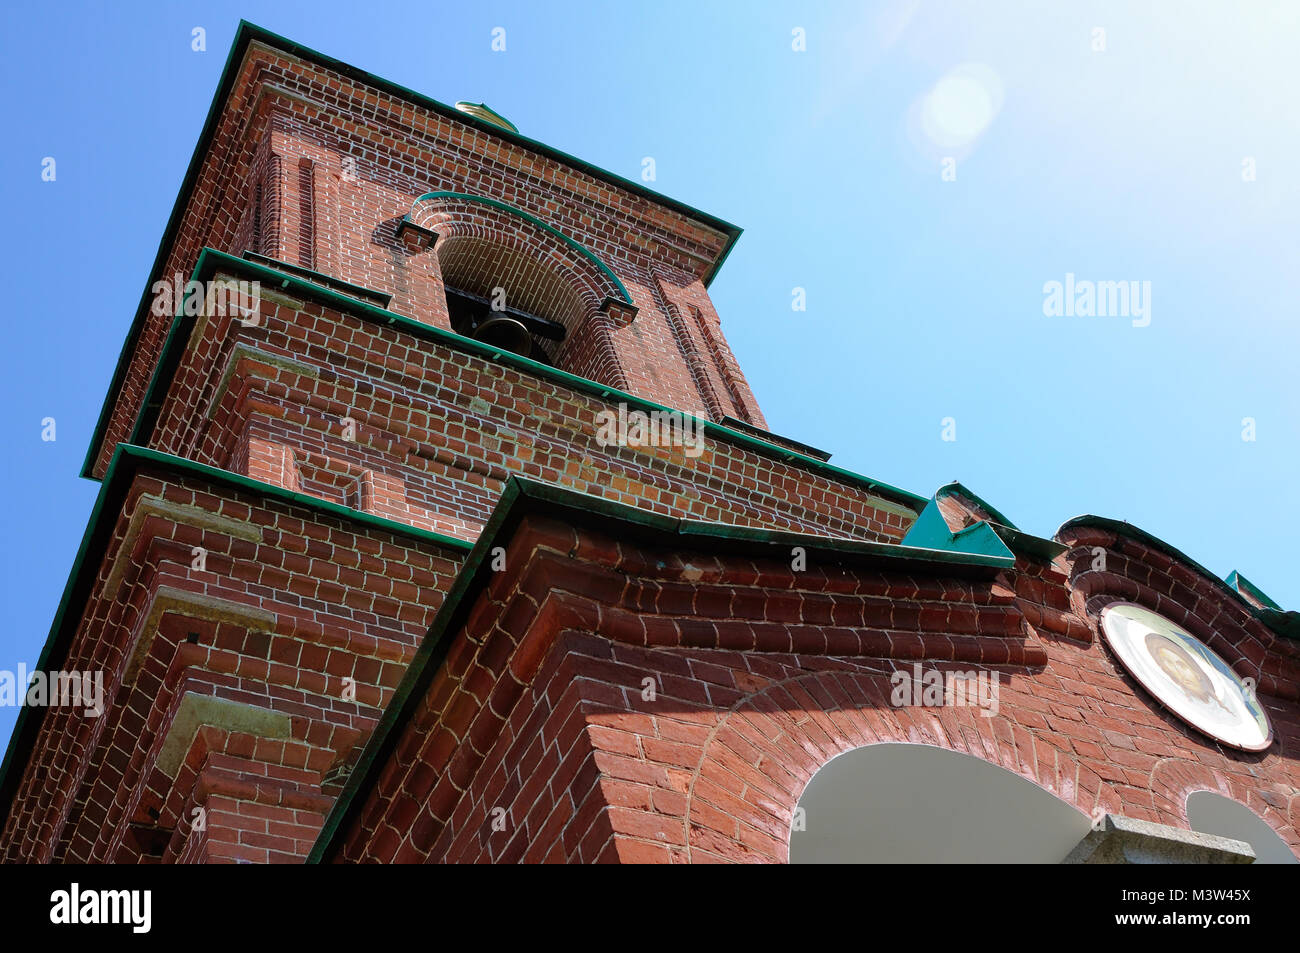 Russian Orthodox Temple of the Valaam Monastery, view from below - Stock Image